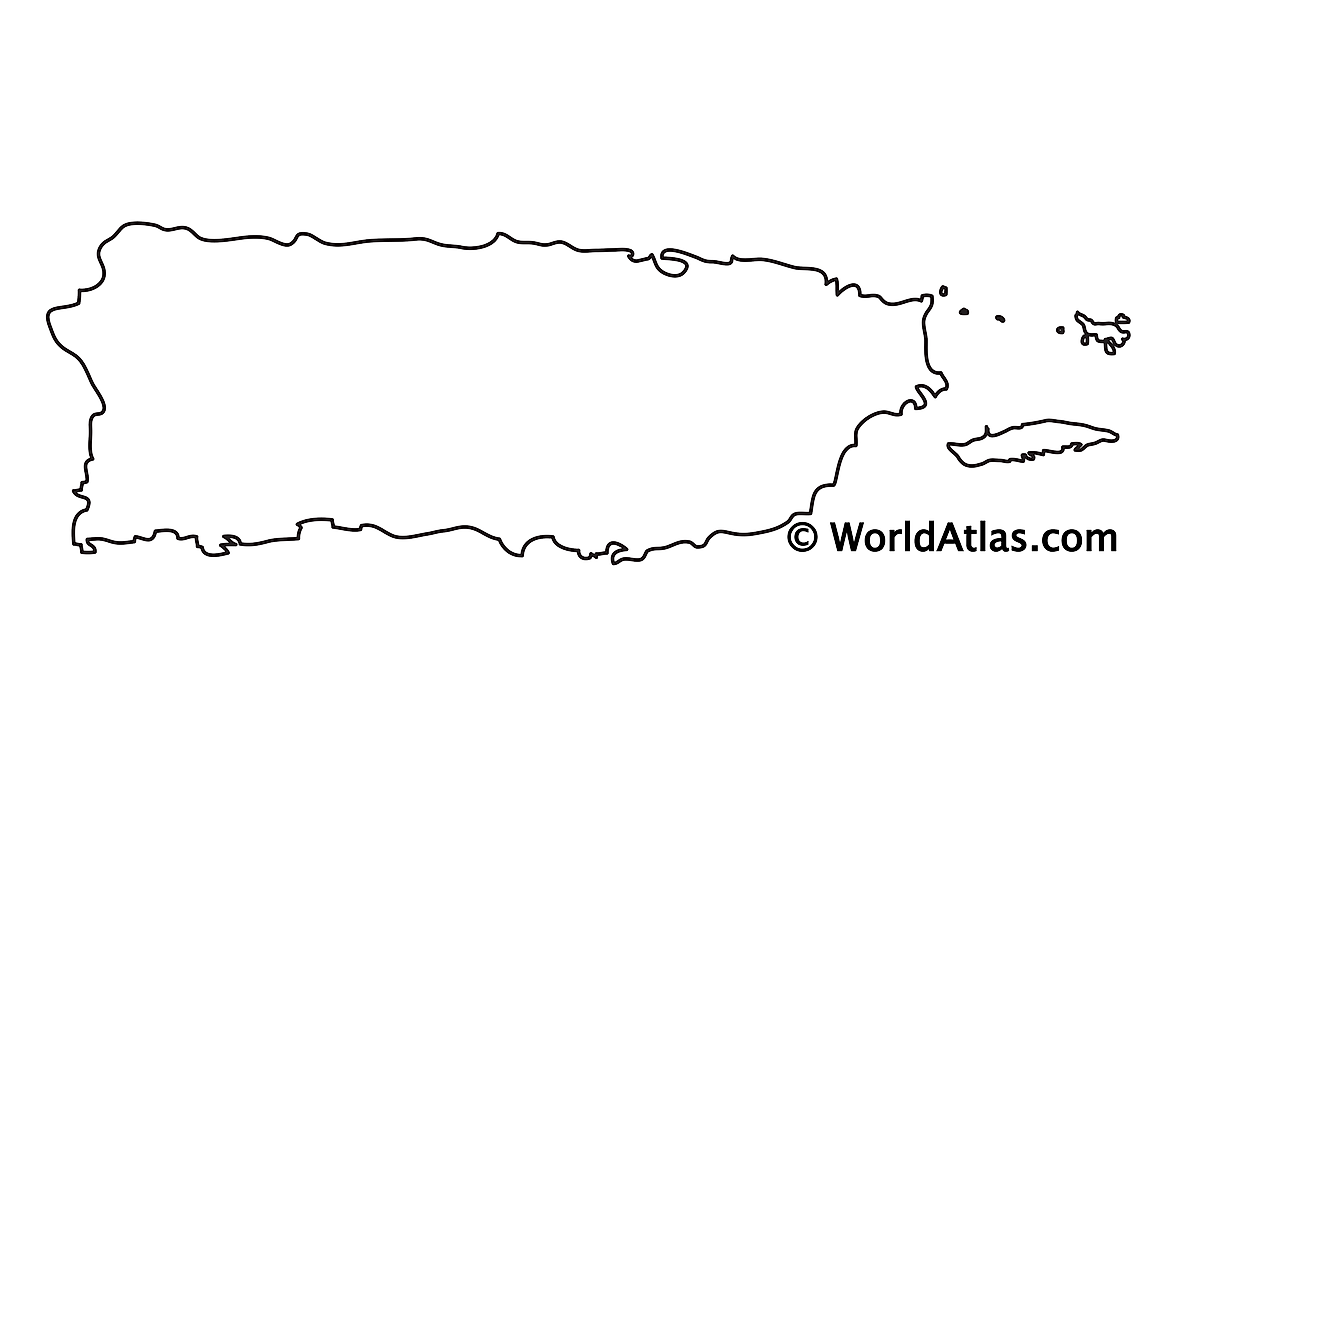 Blank outline map of Puerto Rico